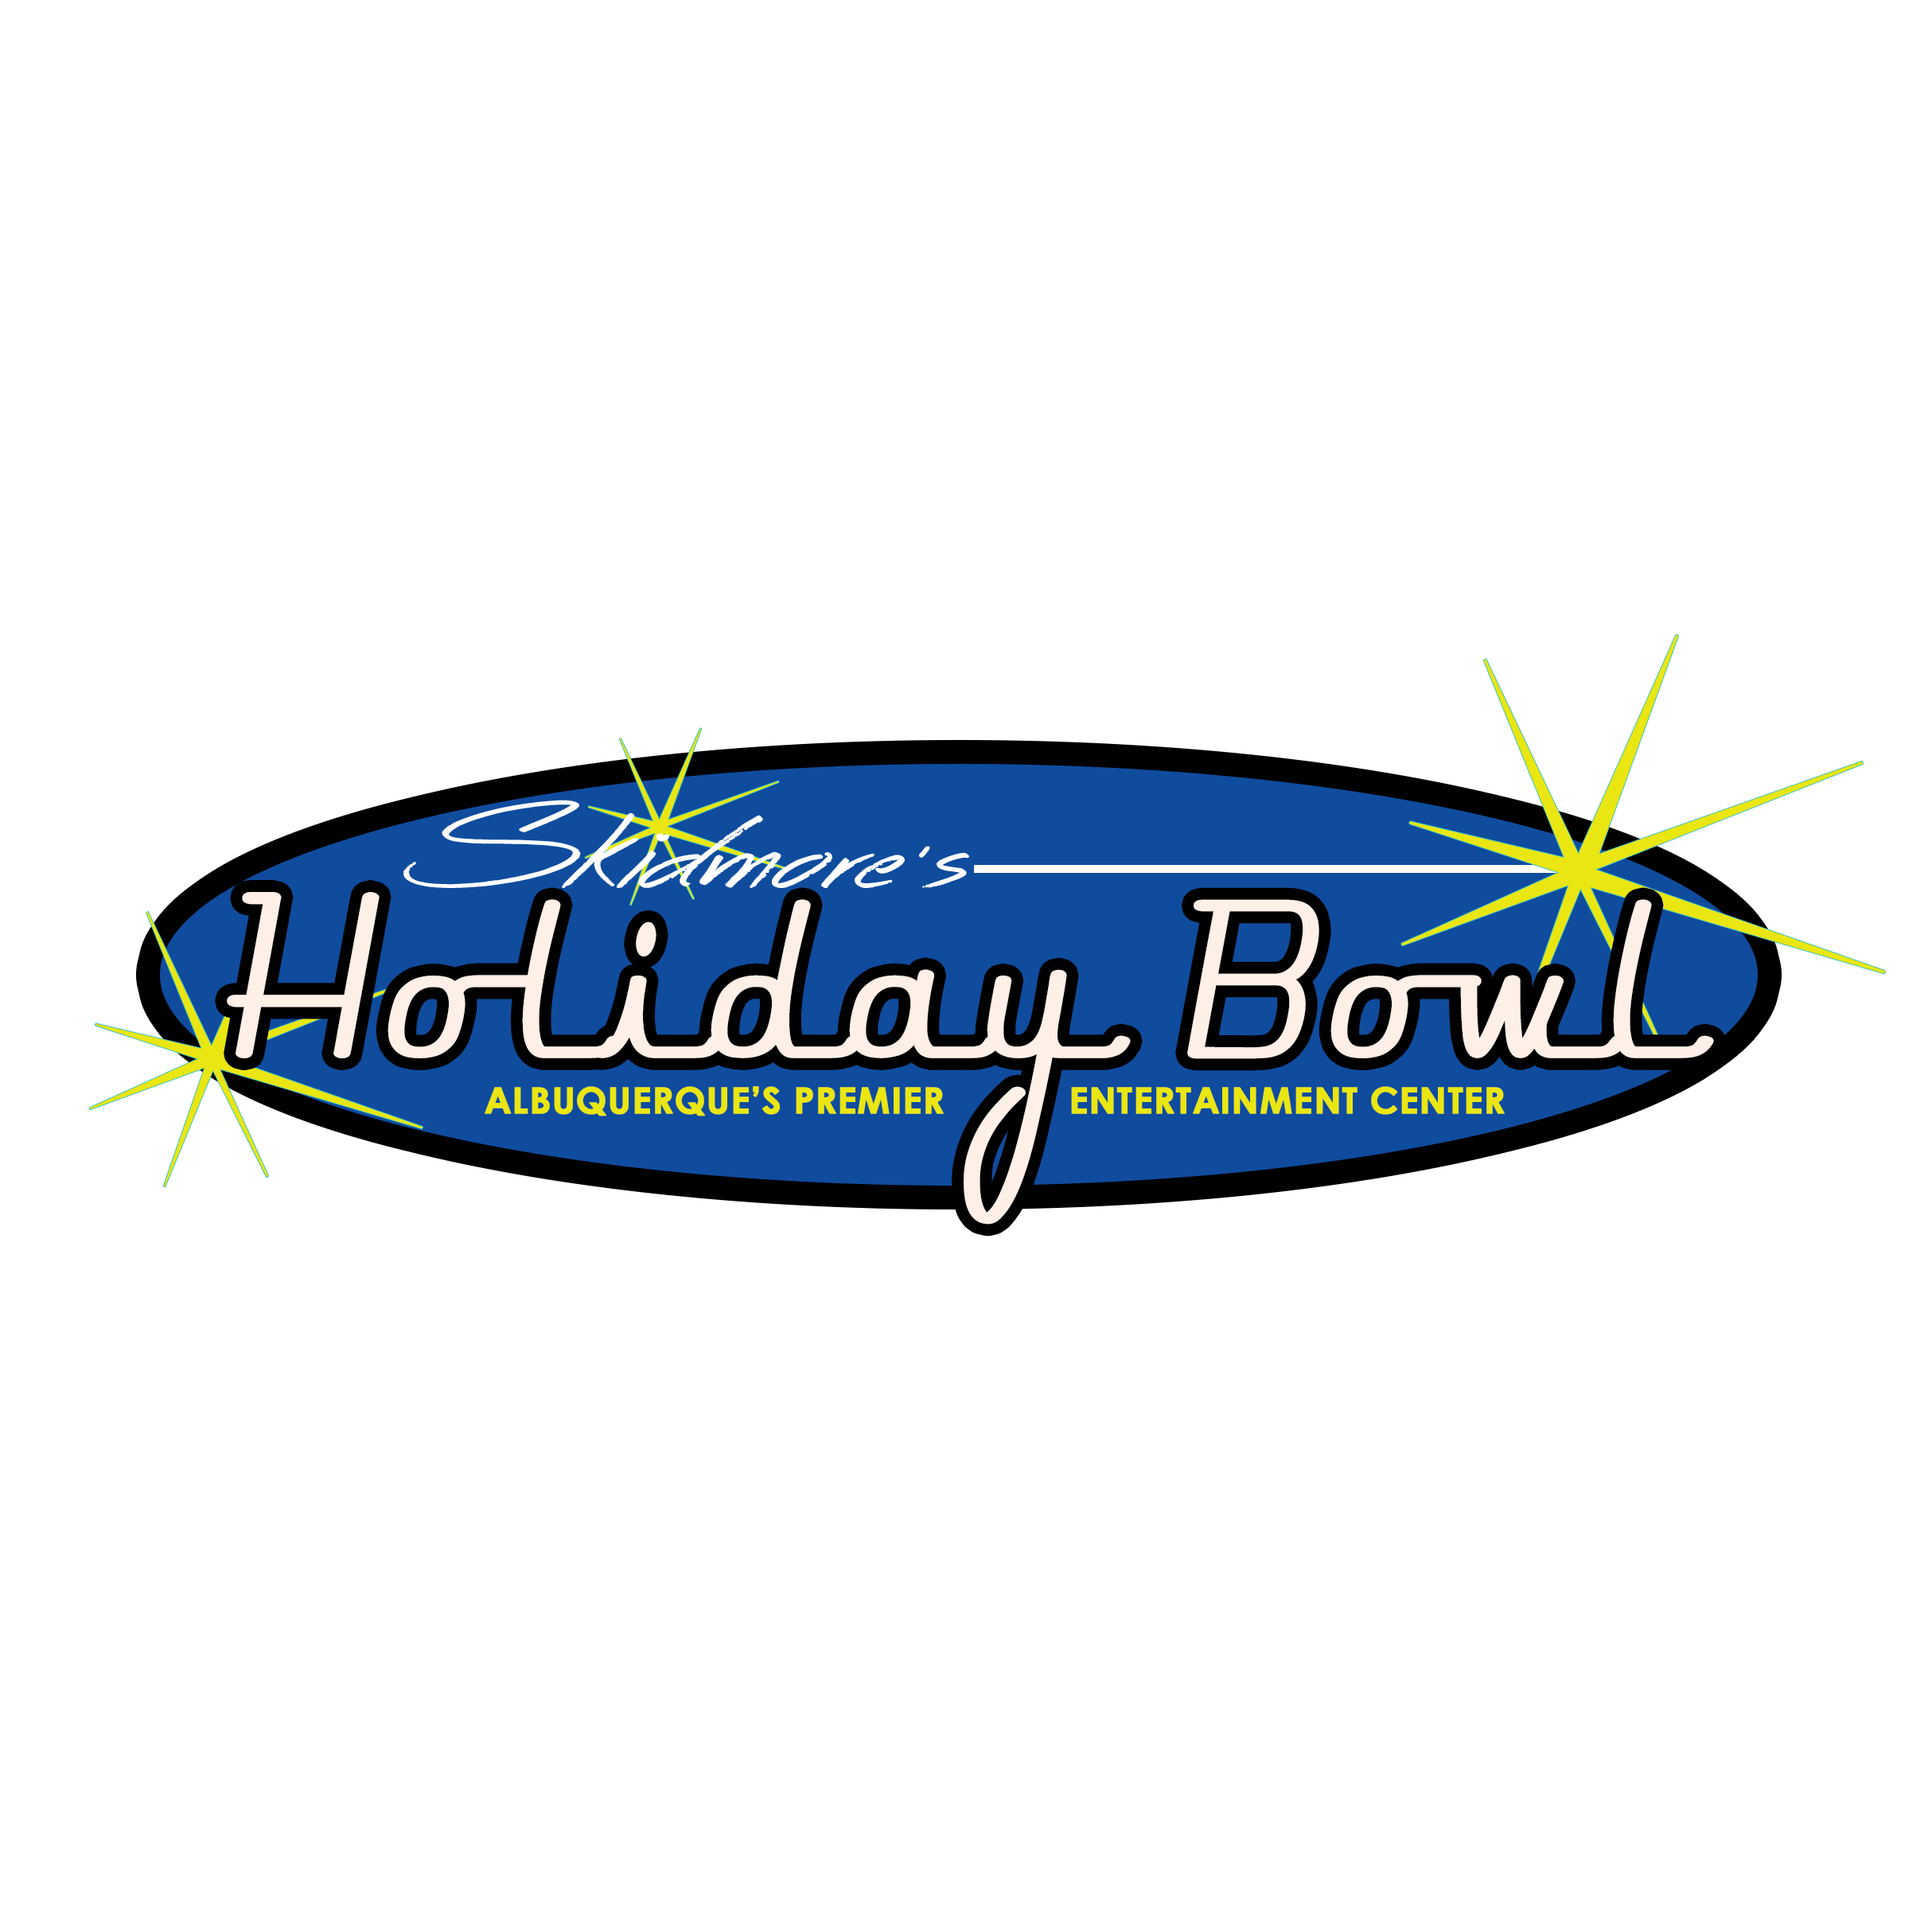 Skidmore's Holiday Bowl